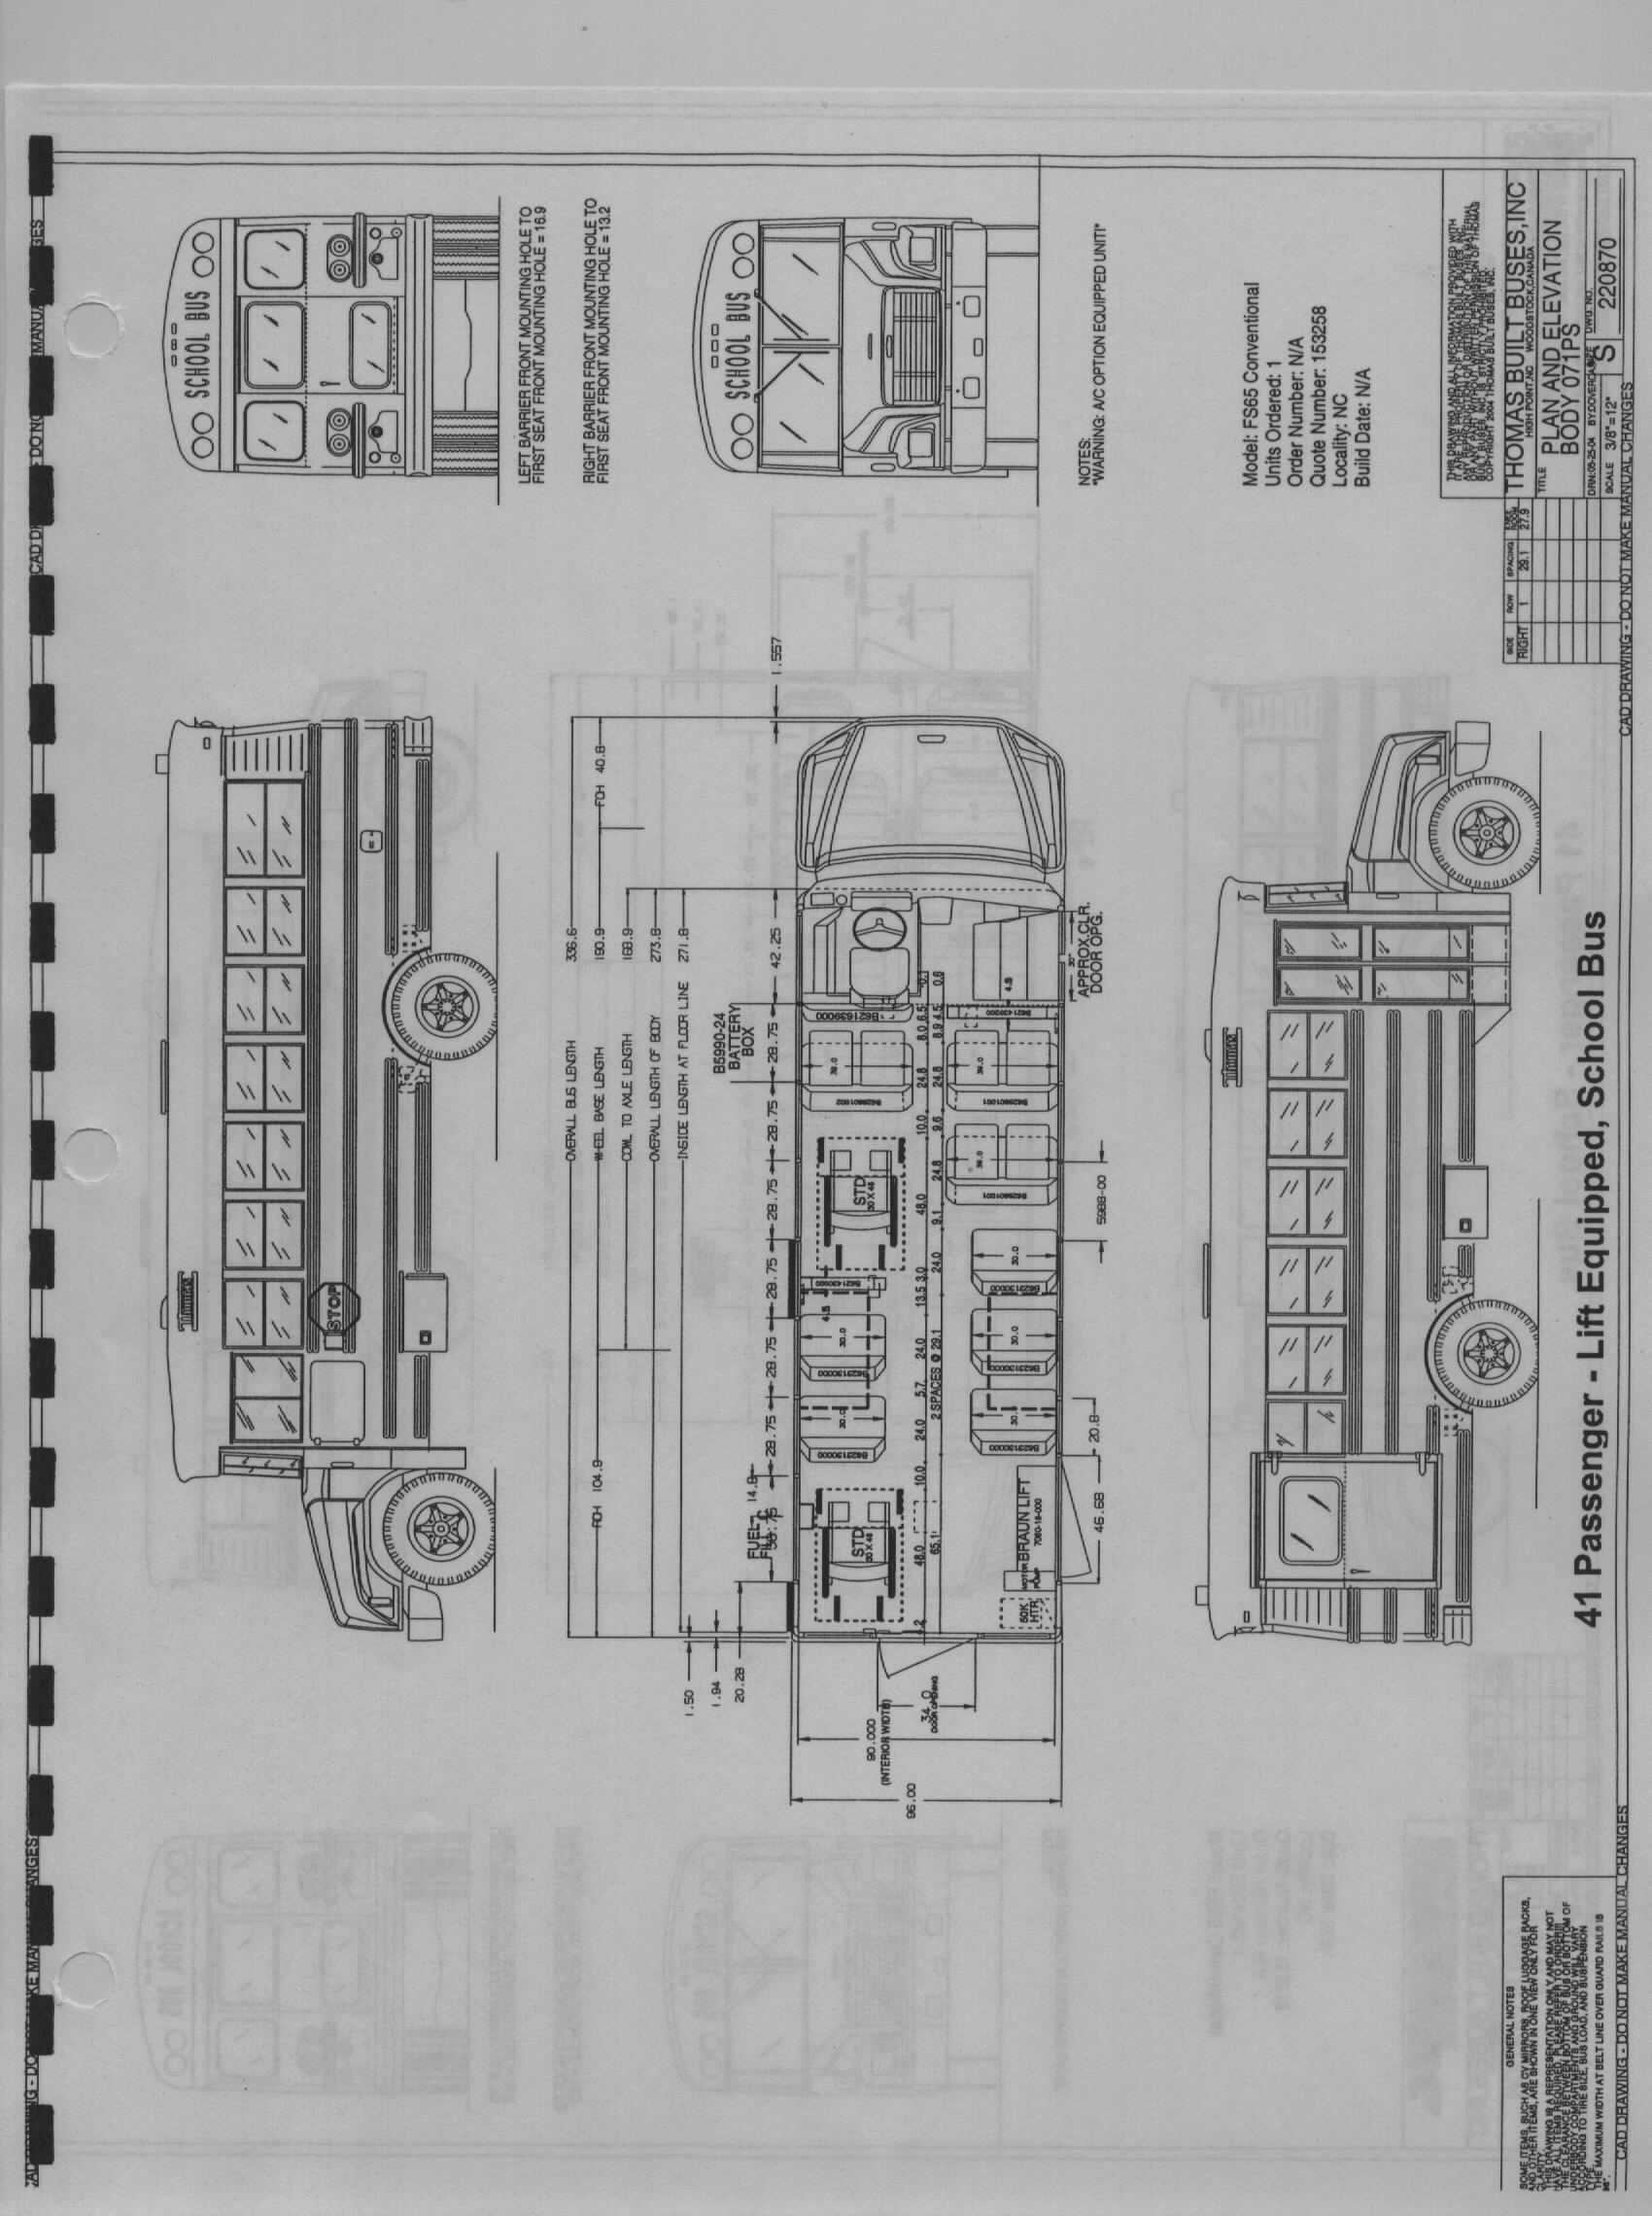 Wiring Diagrams Thomas Freightliner Diagram Will Be A Thing 2005 M2 School Bus Models Rh Ncbussafety Org 2011